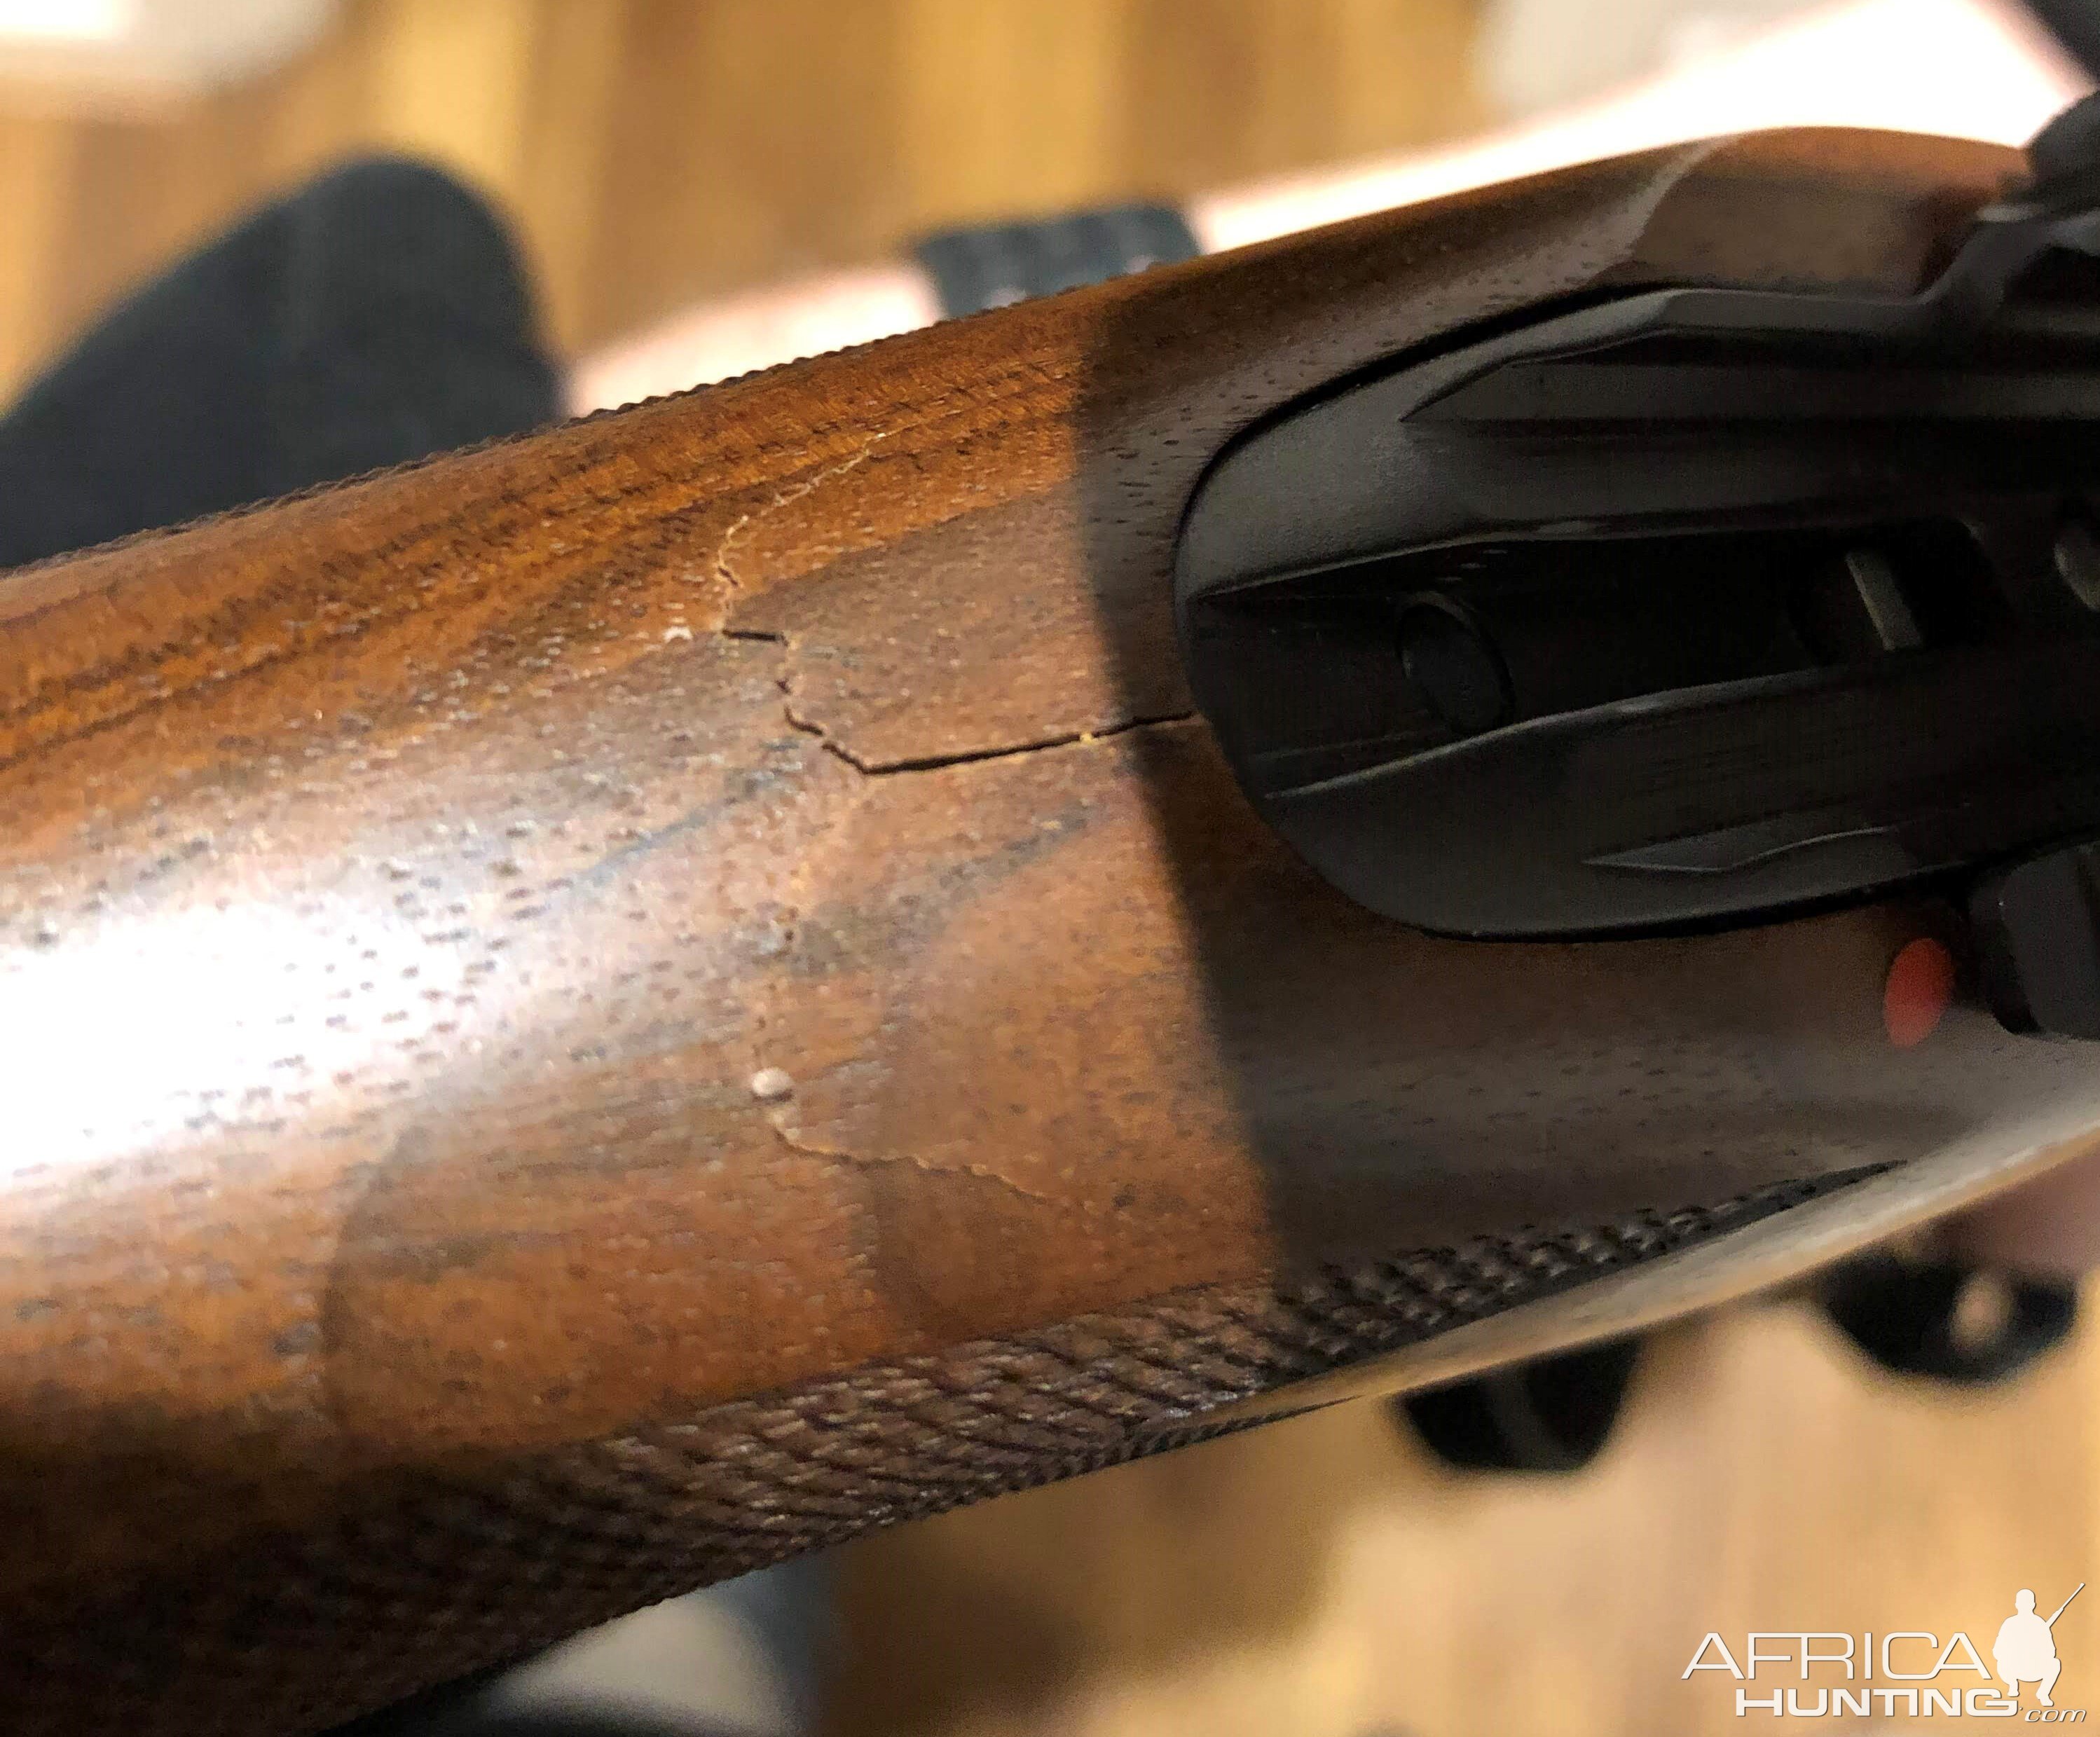 Sako cracked Walnut stock (too close to my face for comfort)